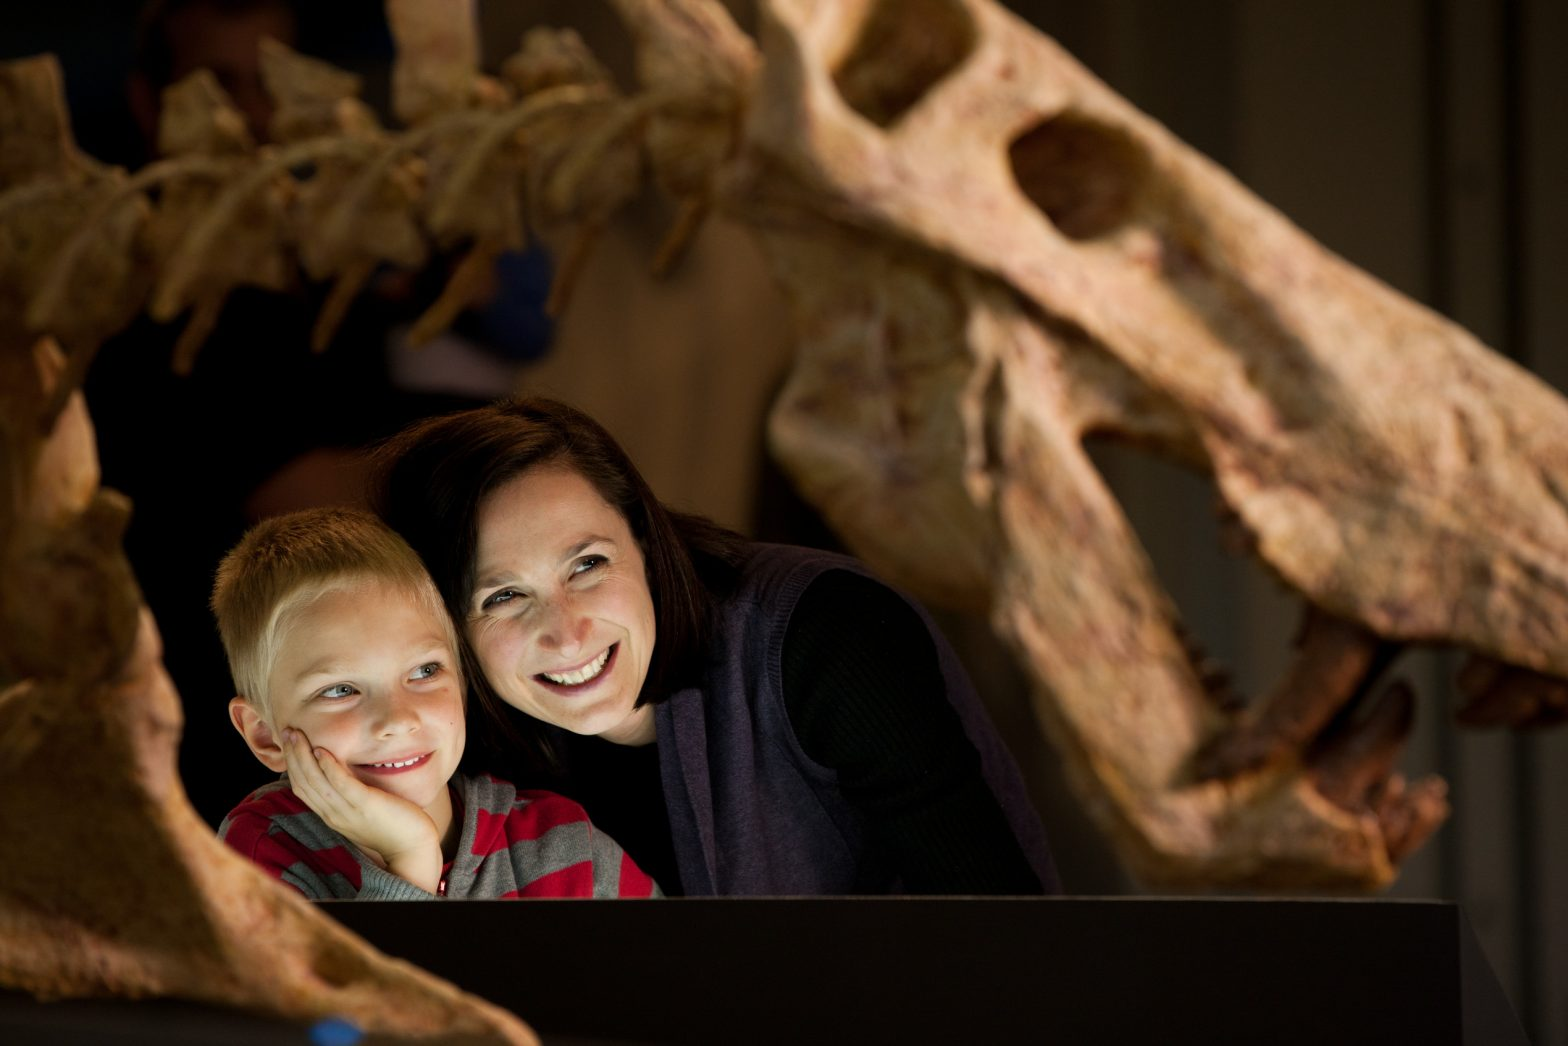 A child and woman looking at dinosaur bones